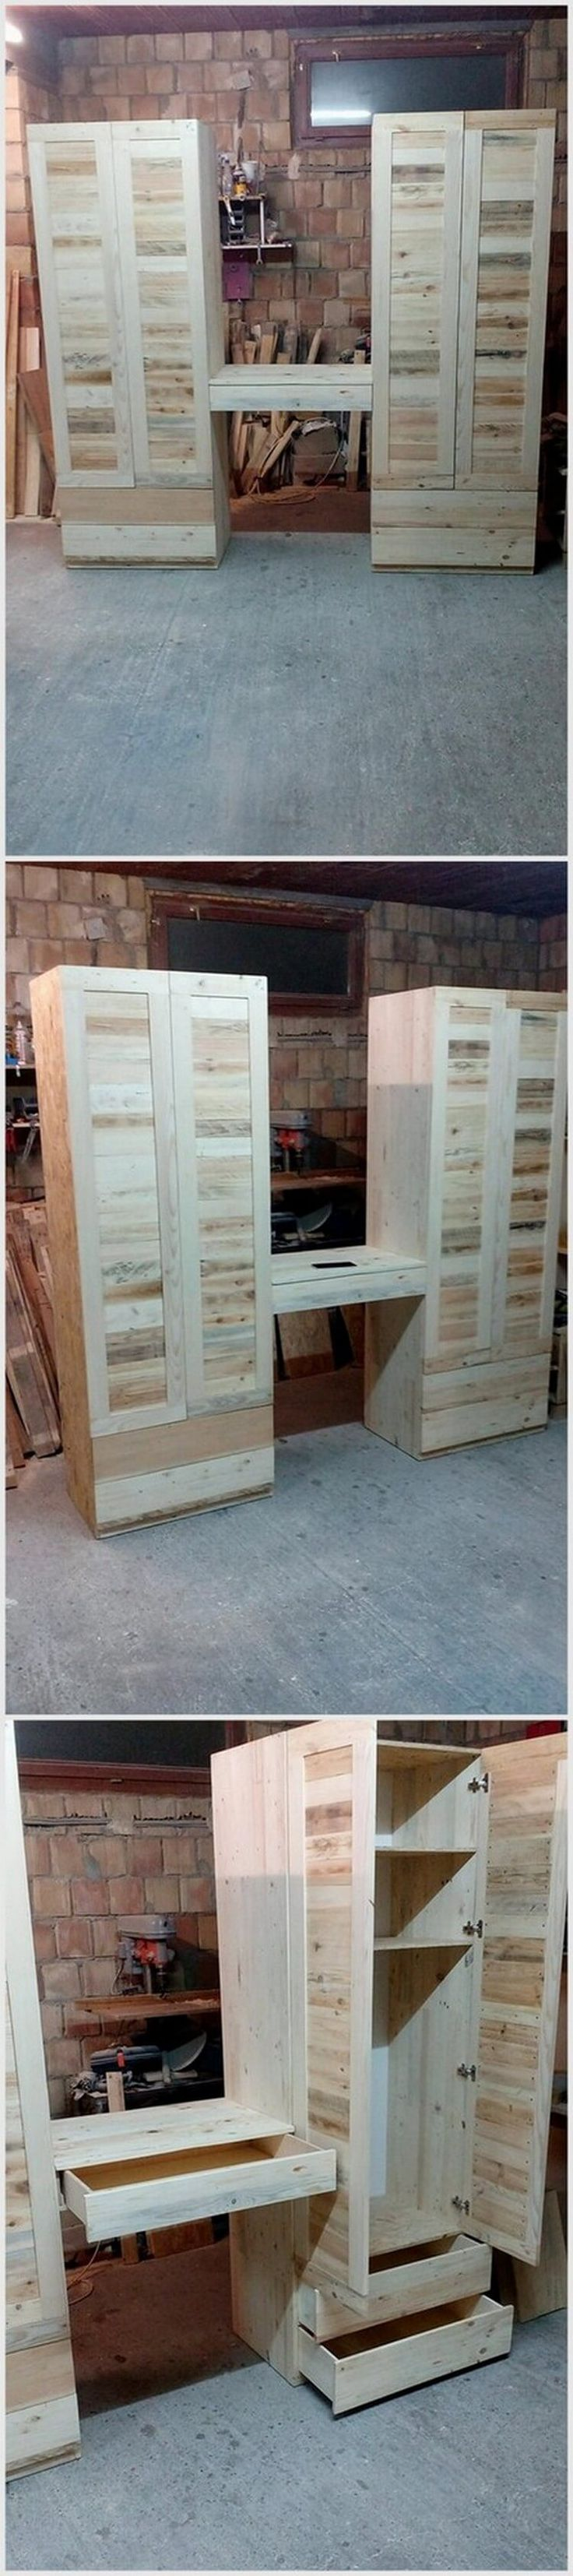 Attractive Wood Pallet Recycling Ideas